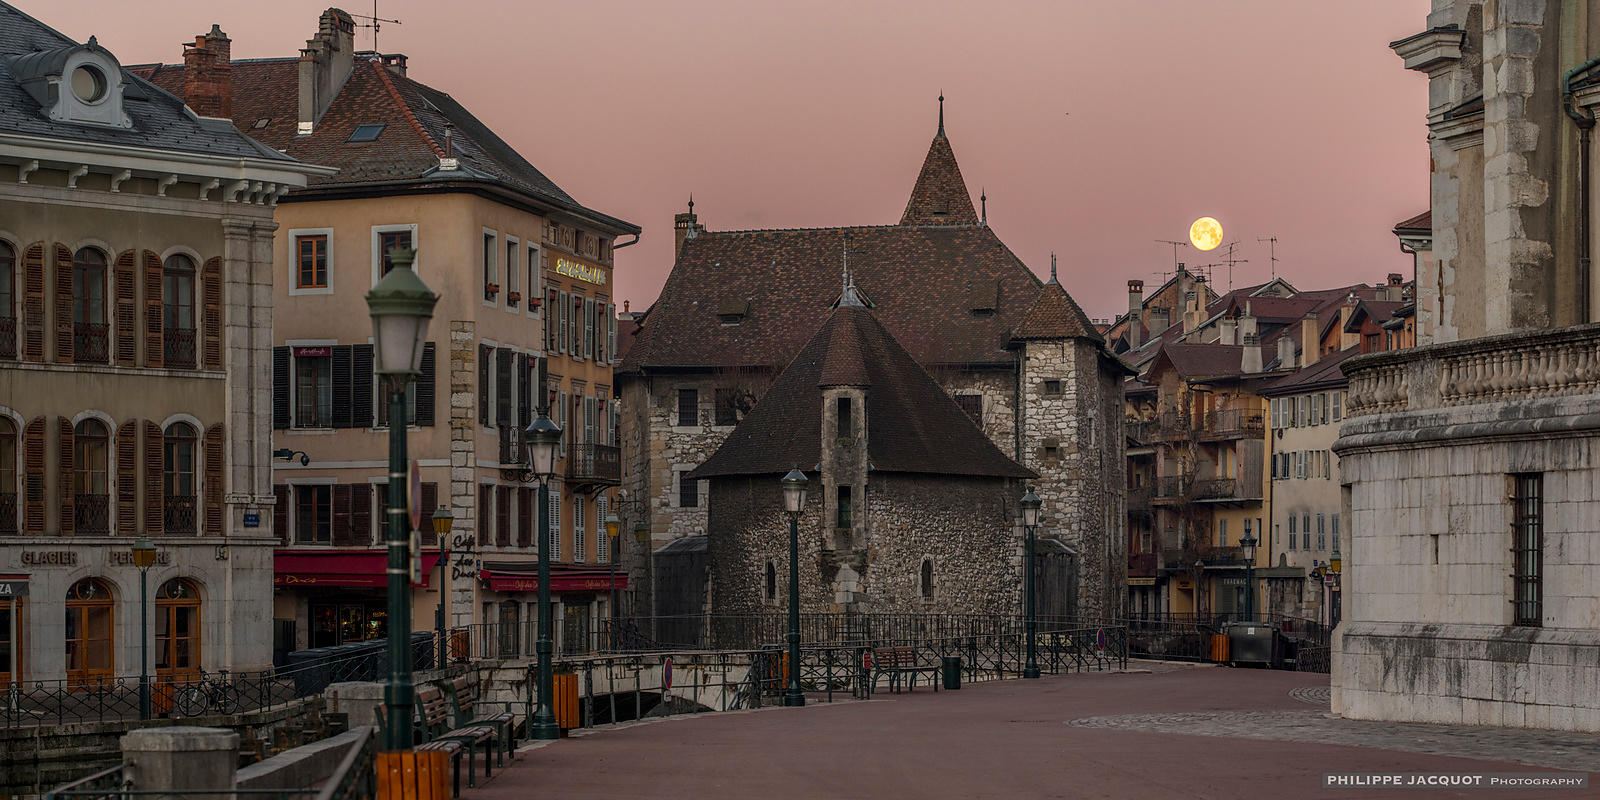 Full Moon over the Palace - Annecy